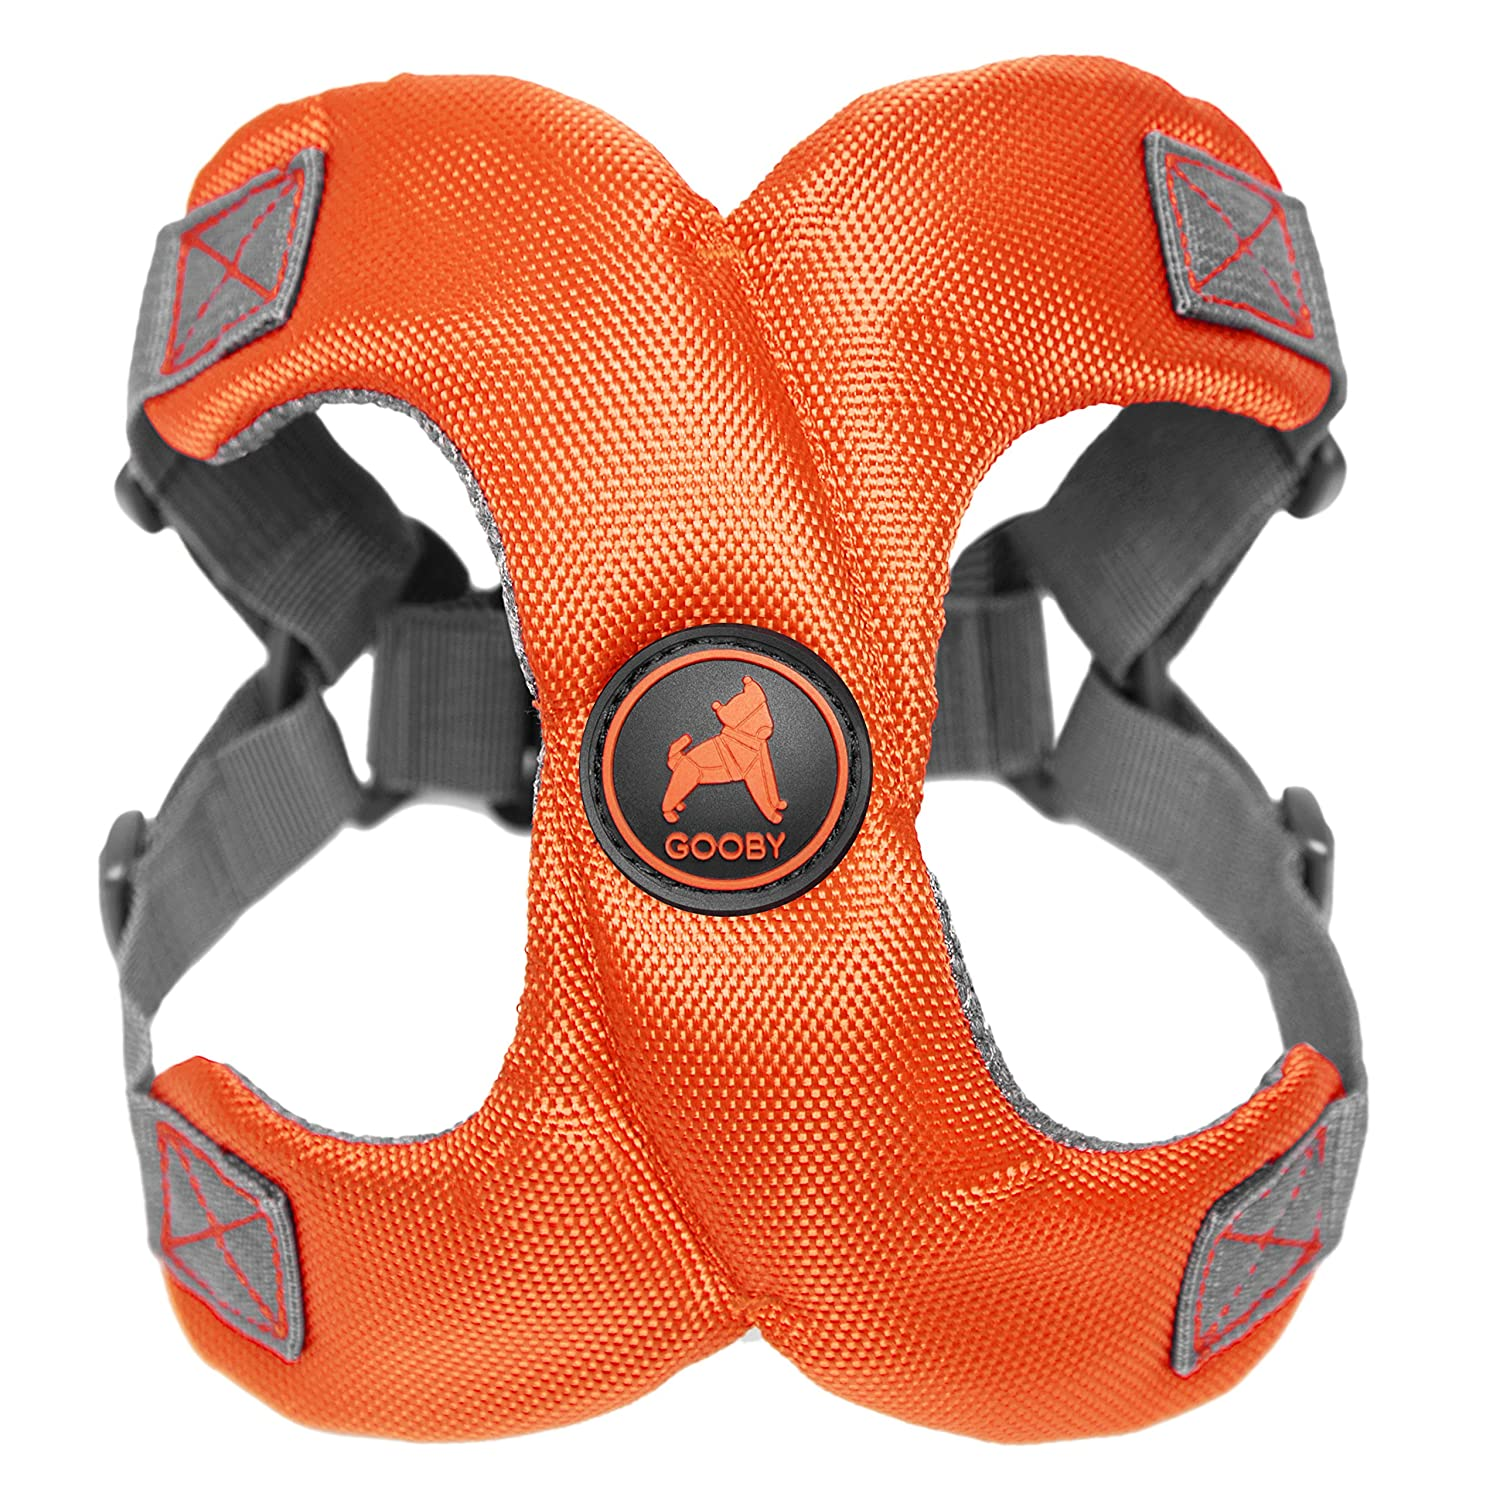 Gooby 04522-ORG-M Gooby Escape Free Memory Foam Dog Harness that Prevents Dog from Escaping, orange, Medium